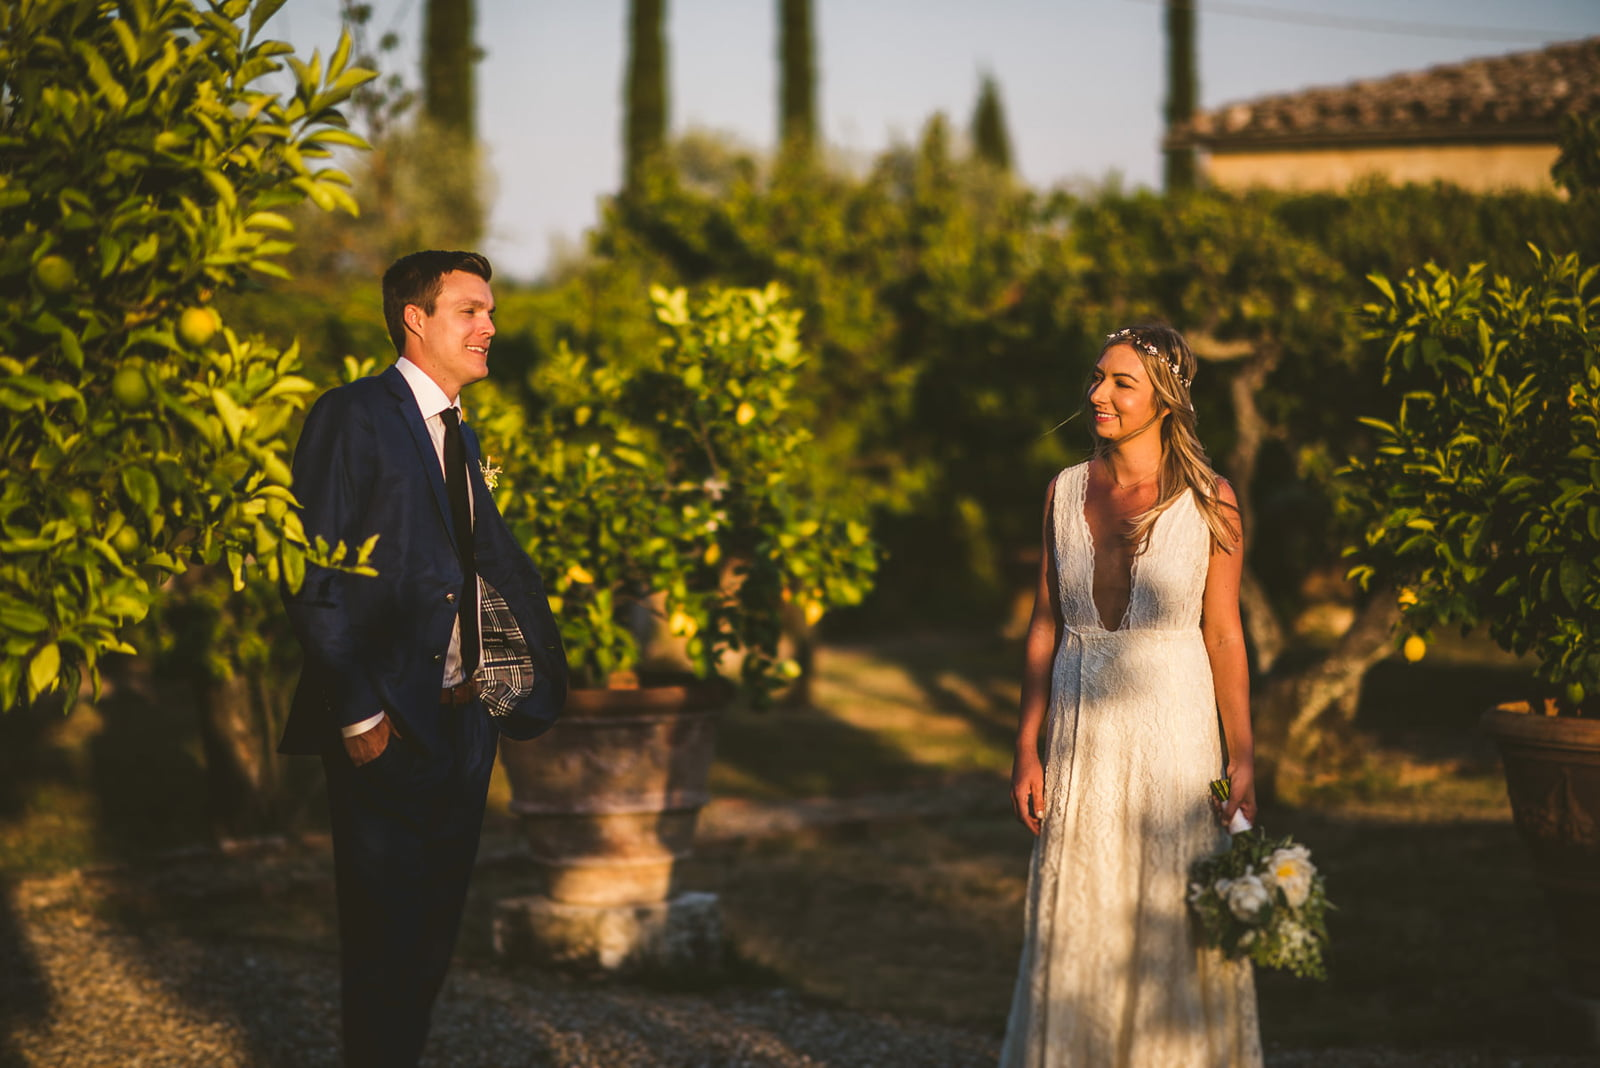 A+L Wedding at Montechiaro, Siena by Federico Pannacci 84